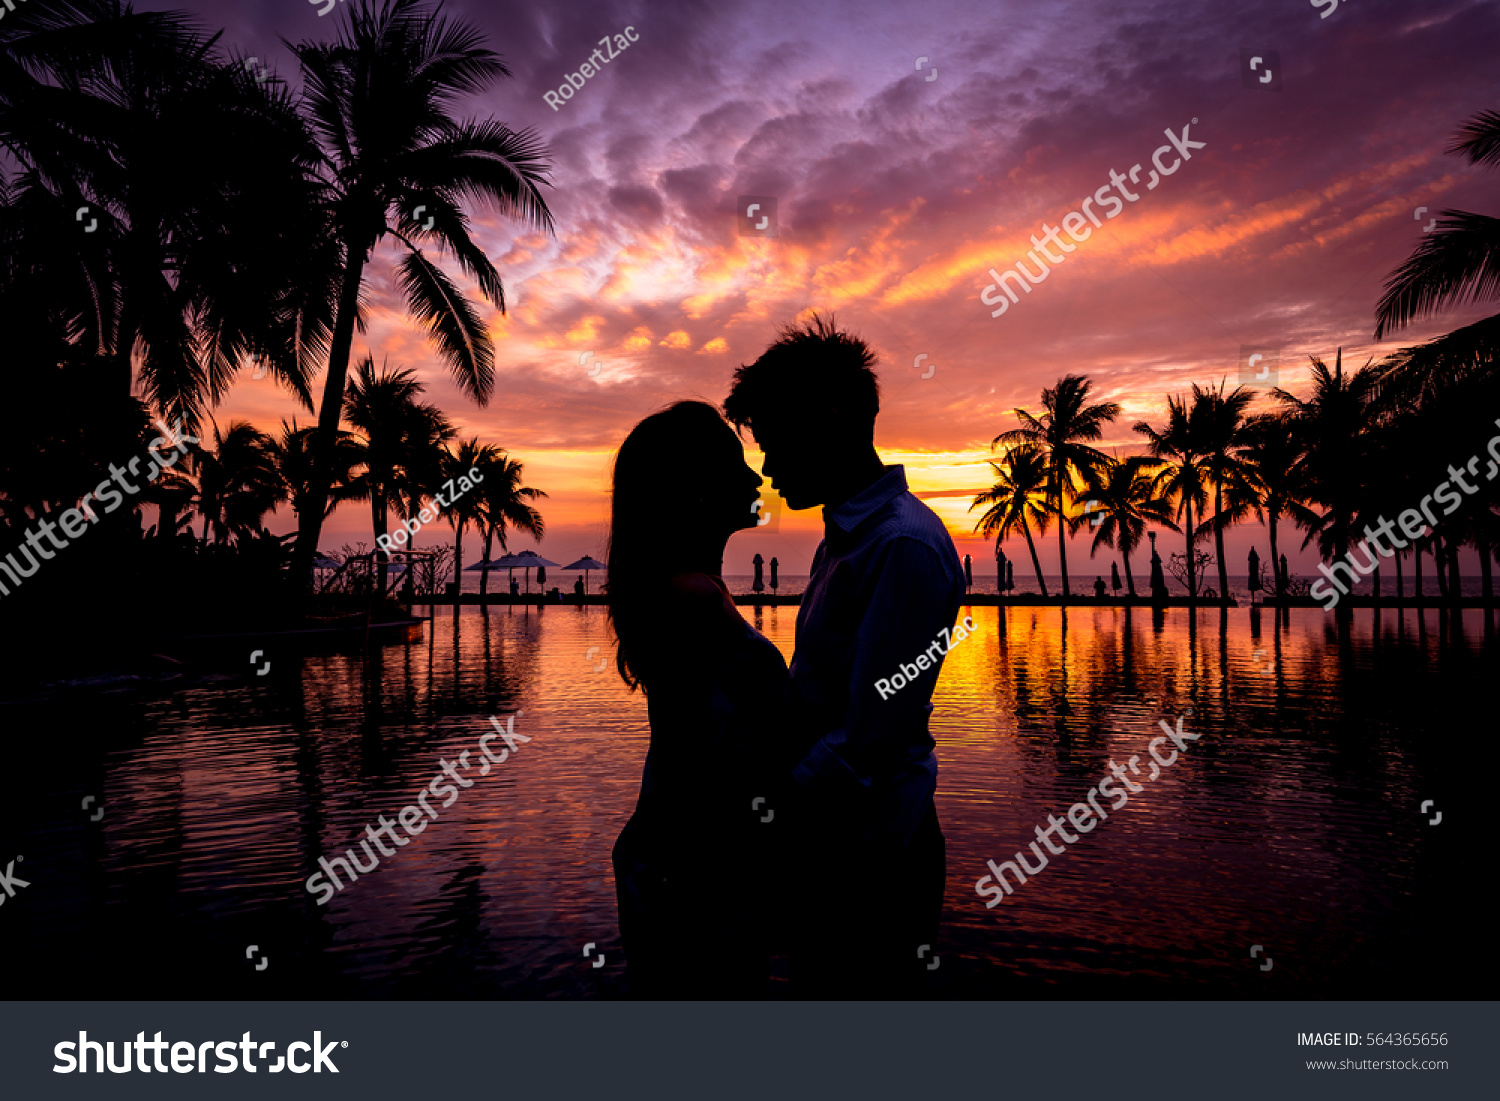 Silhouette Love Sweet Heart Nature Sunset Stock Photo Edit Now 564365656